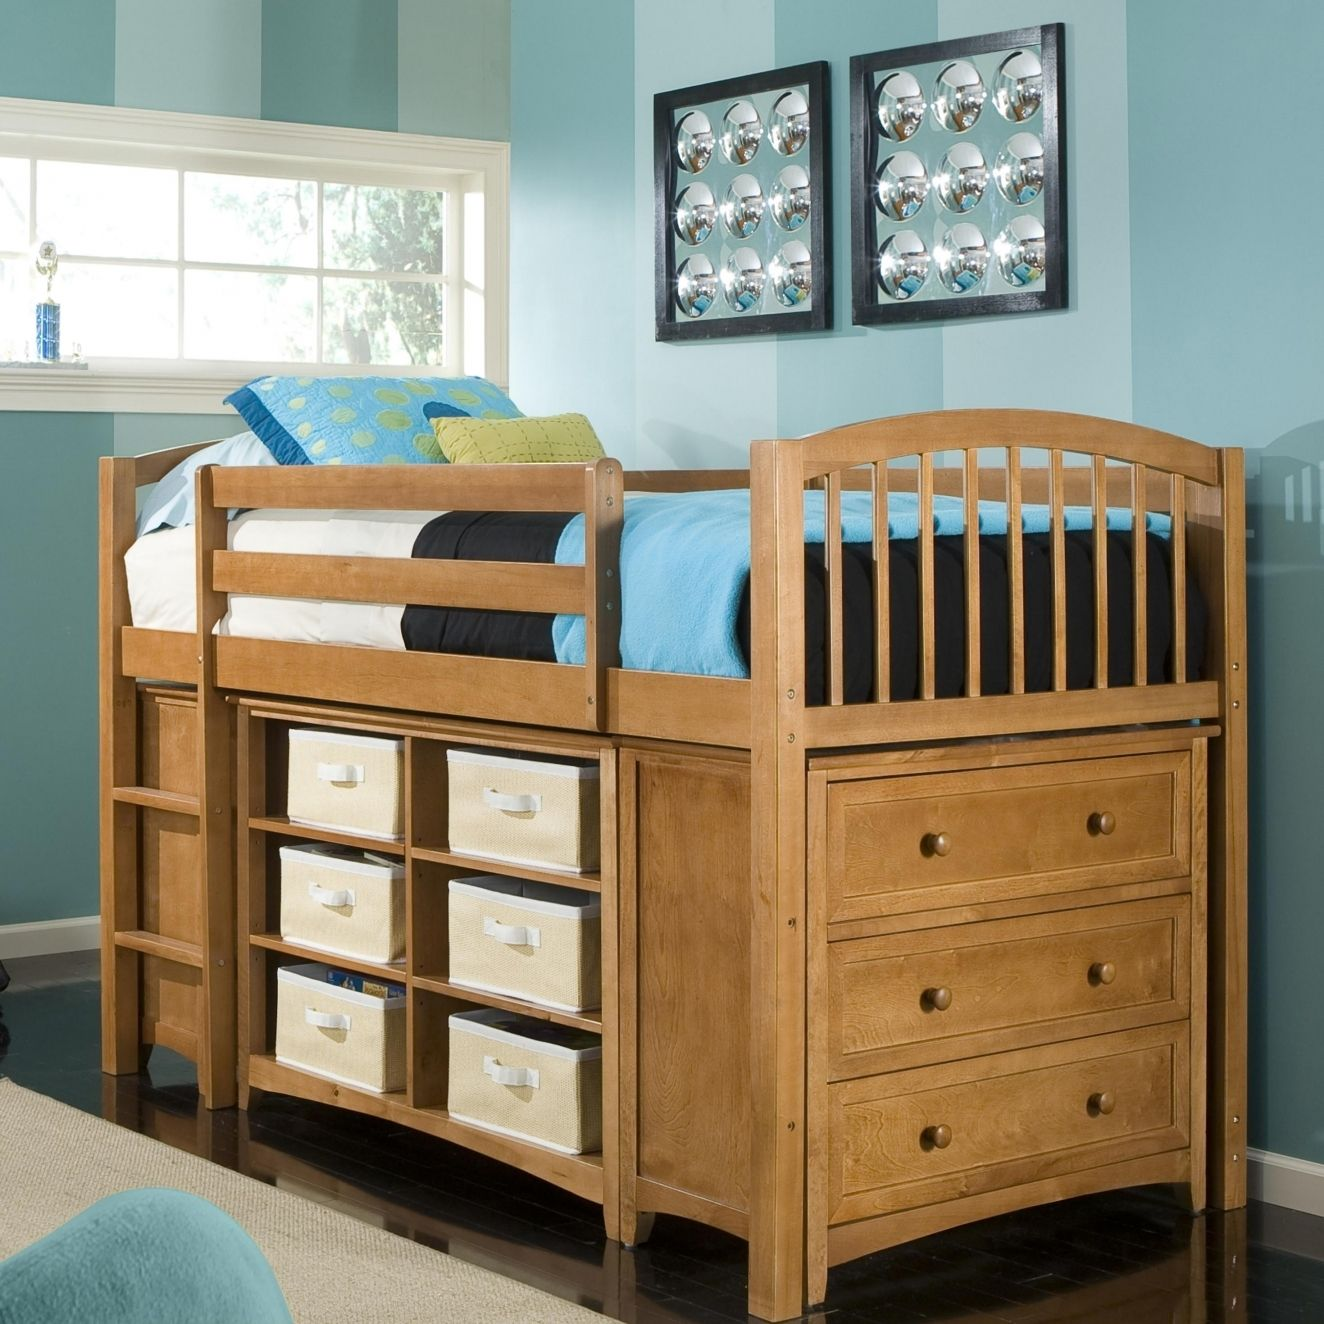 Space Saving Ideas For Small Kids Bedrooms Part - 39: Kids Room Designs Nice Organized Space Saving Small Kids Room With Amazing  Natural Wood Loft Bed Integrated With Hidden Storage Unit Underneath Cool  Kids ...